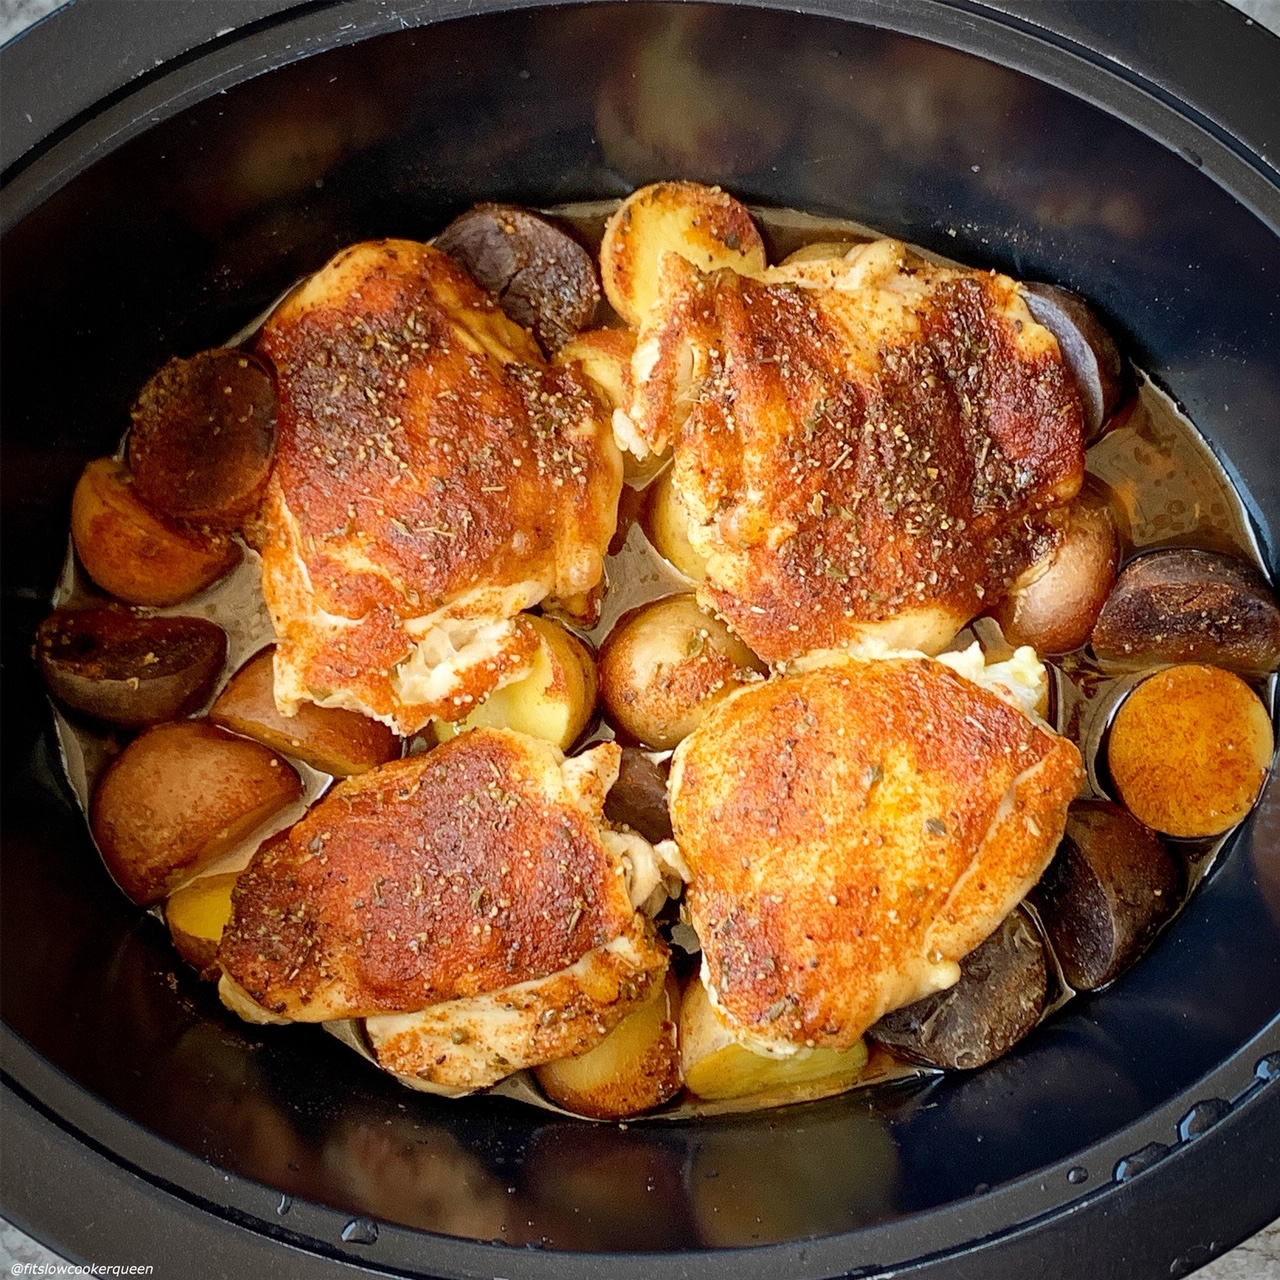 after pic of cooked chicken on top of baby potatoes seasoned with homemade rotisserie chicken for the recipe slow cooker or instant pot rotisserie chicken dinner